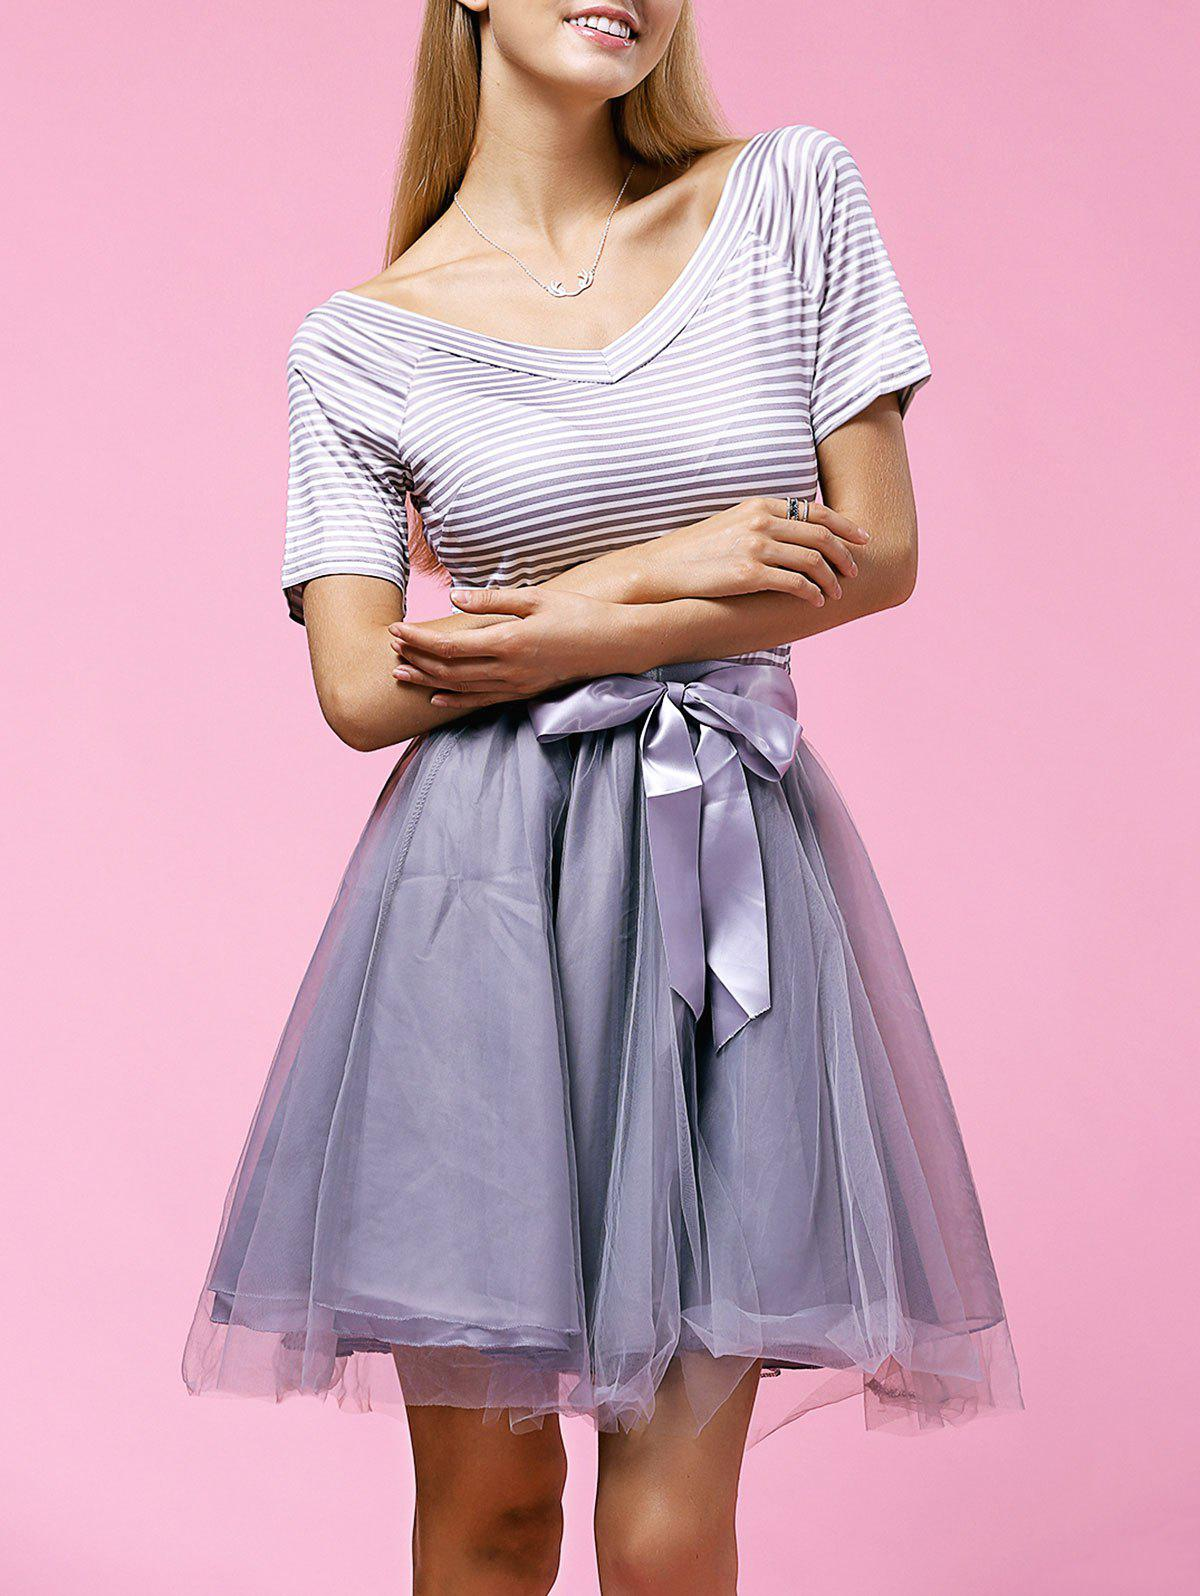 Sweet Striped V-Neck T-Shirt + Bowknot Embellished Bubble Skirt Womens TwinsetWomen<br><br><br>Size: 2XL<br>Color: GRAY